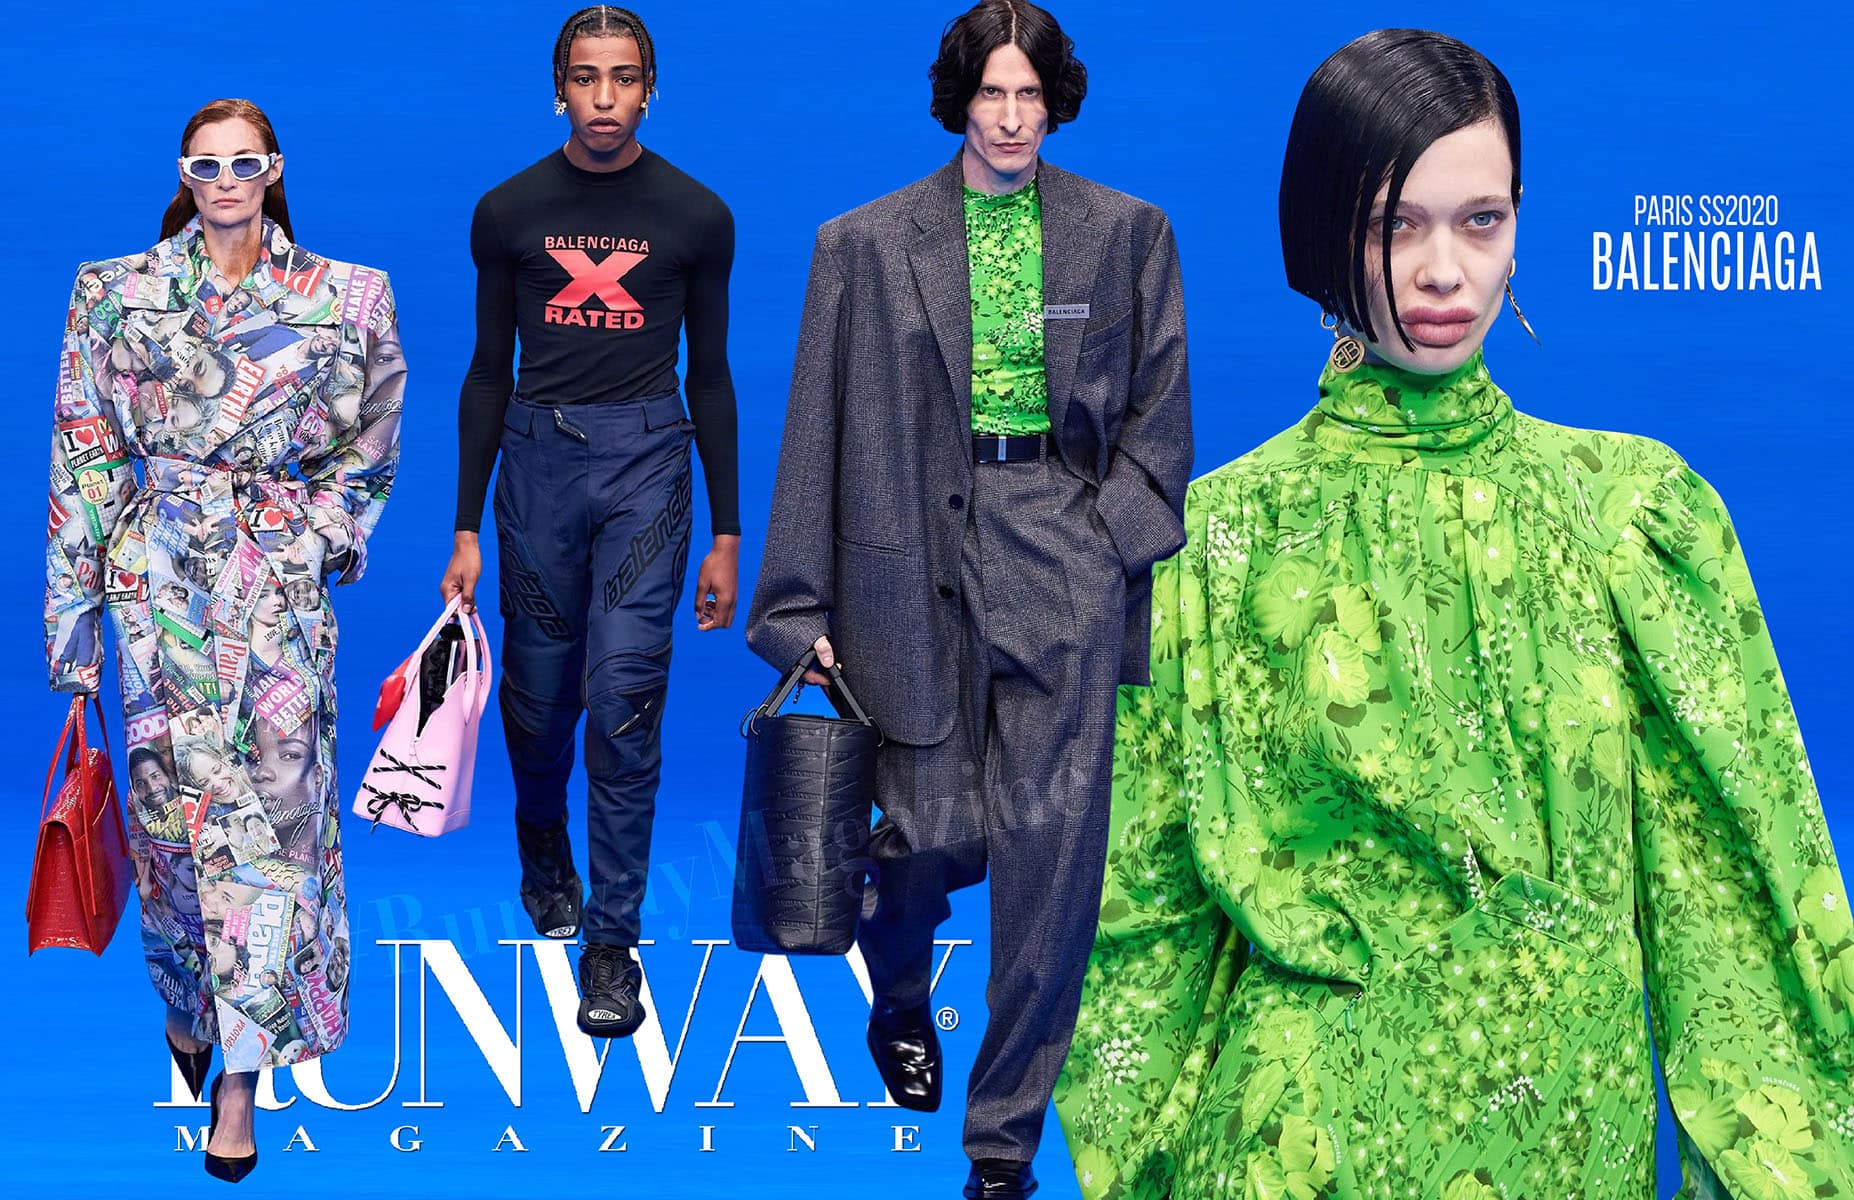 Balenciaga Spring Summer 2020 Paris by RUNWAY MAGAZINE